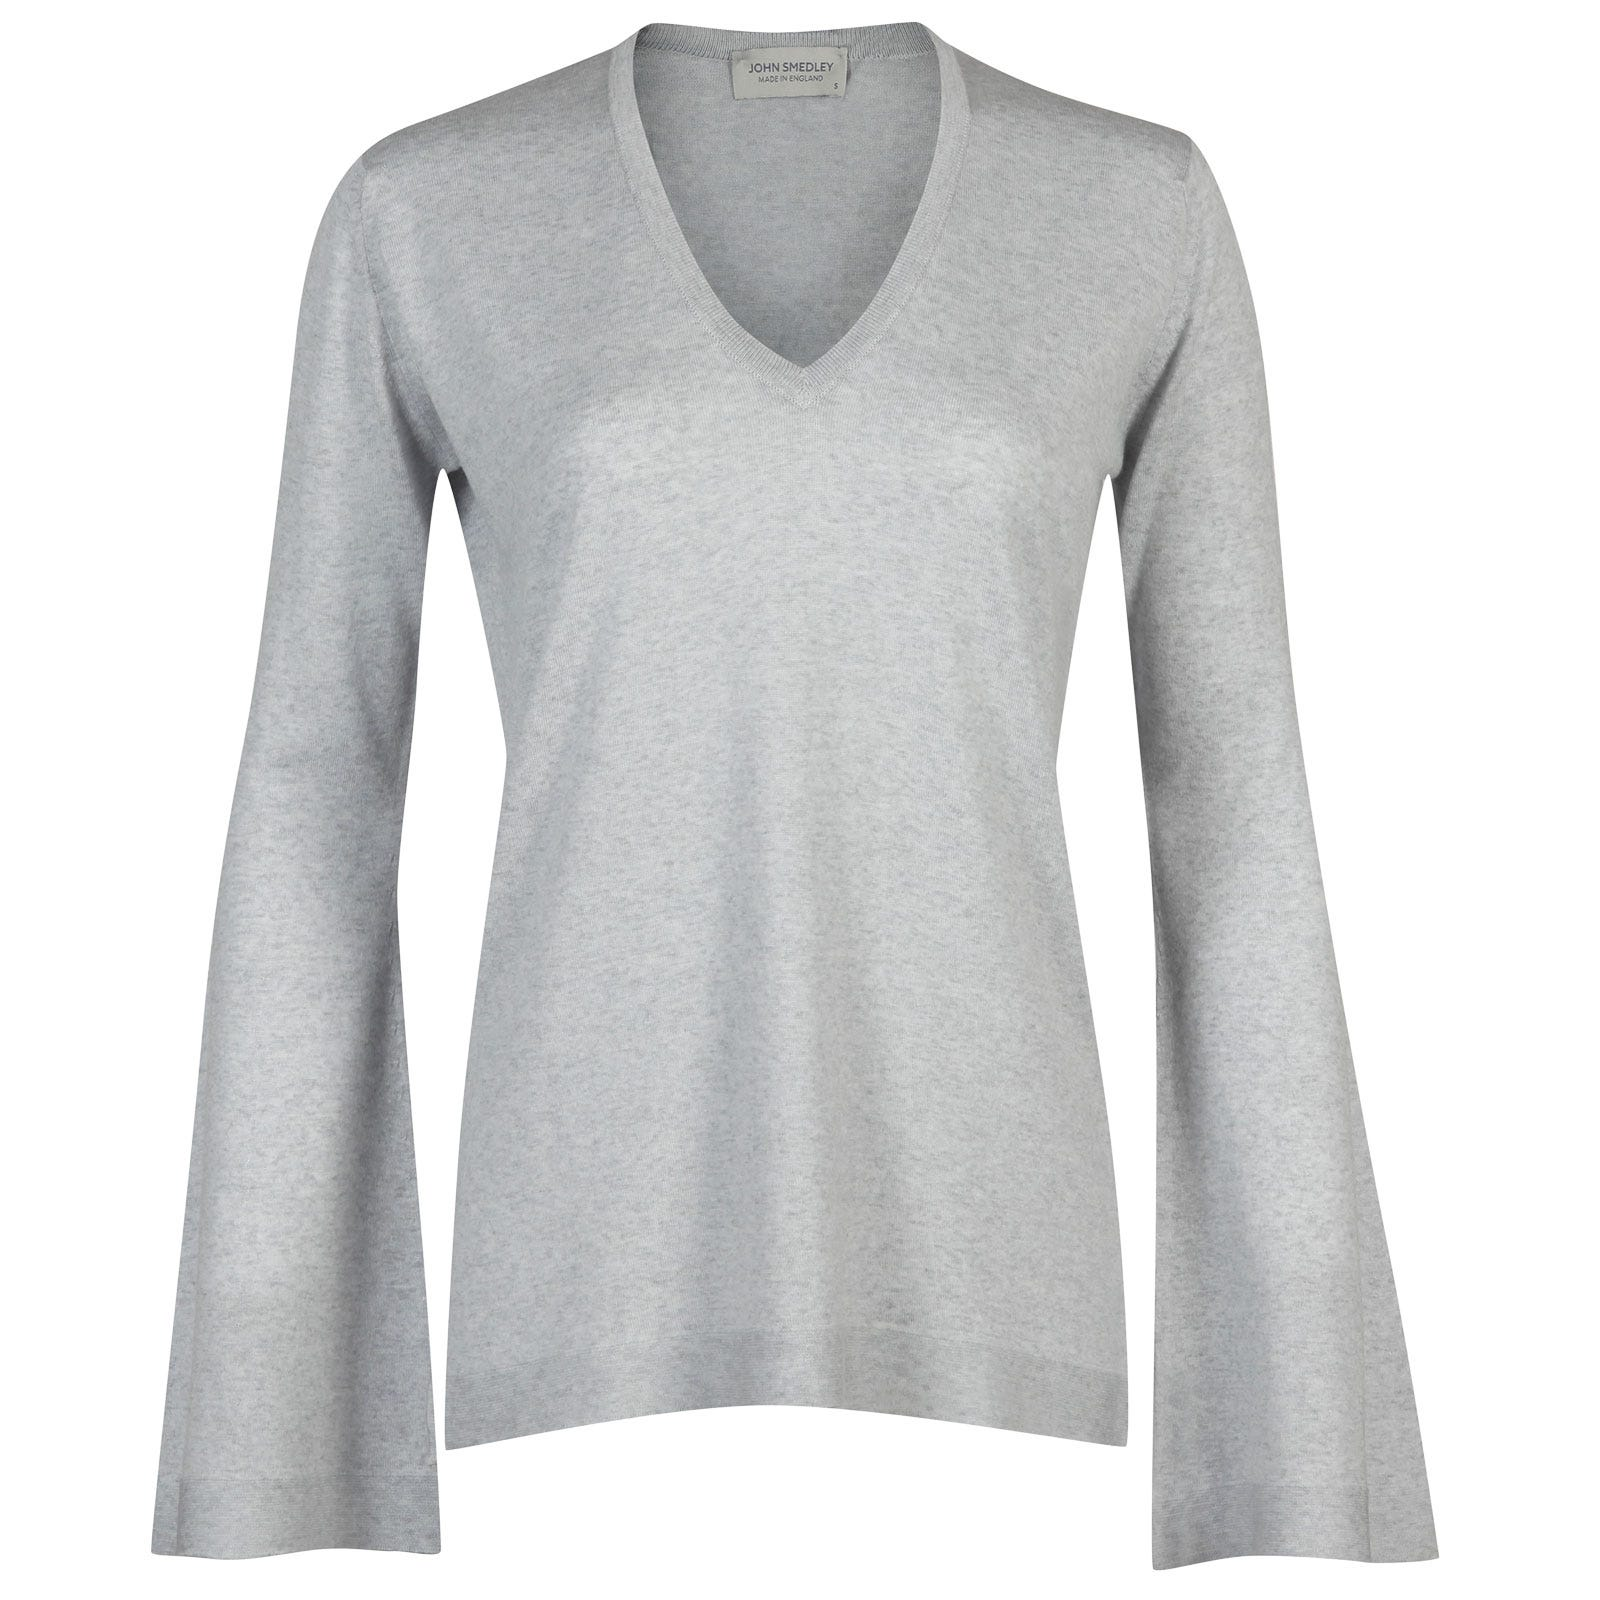 John Smedley bannerman Merino Wool Sweater in Bardot Grey-M